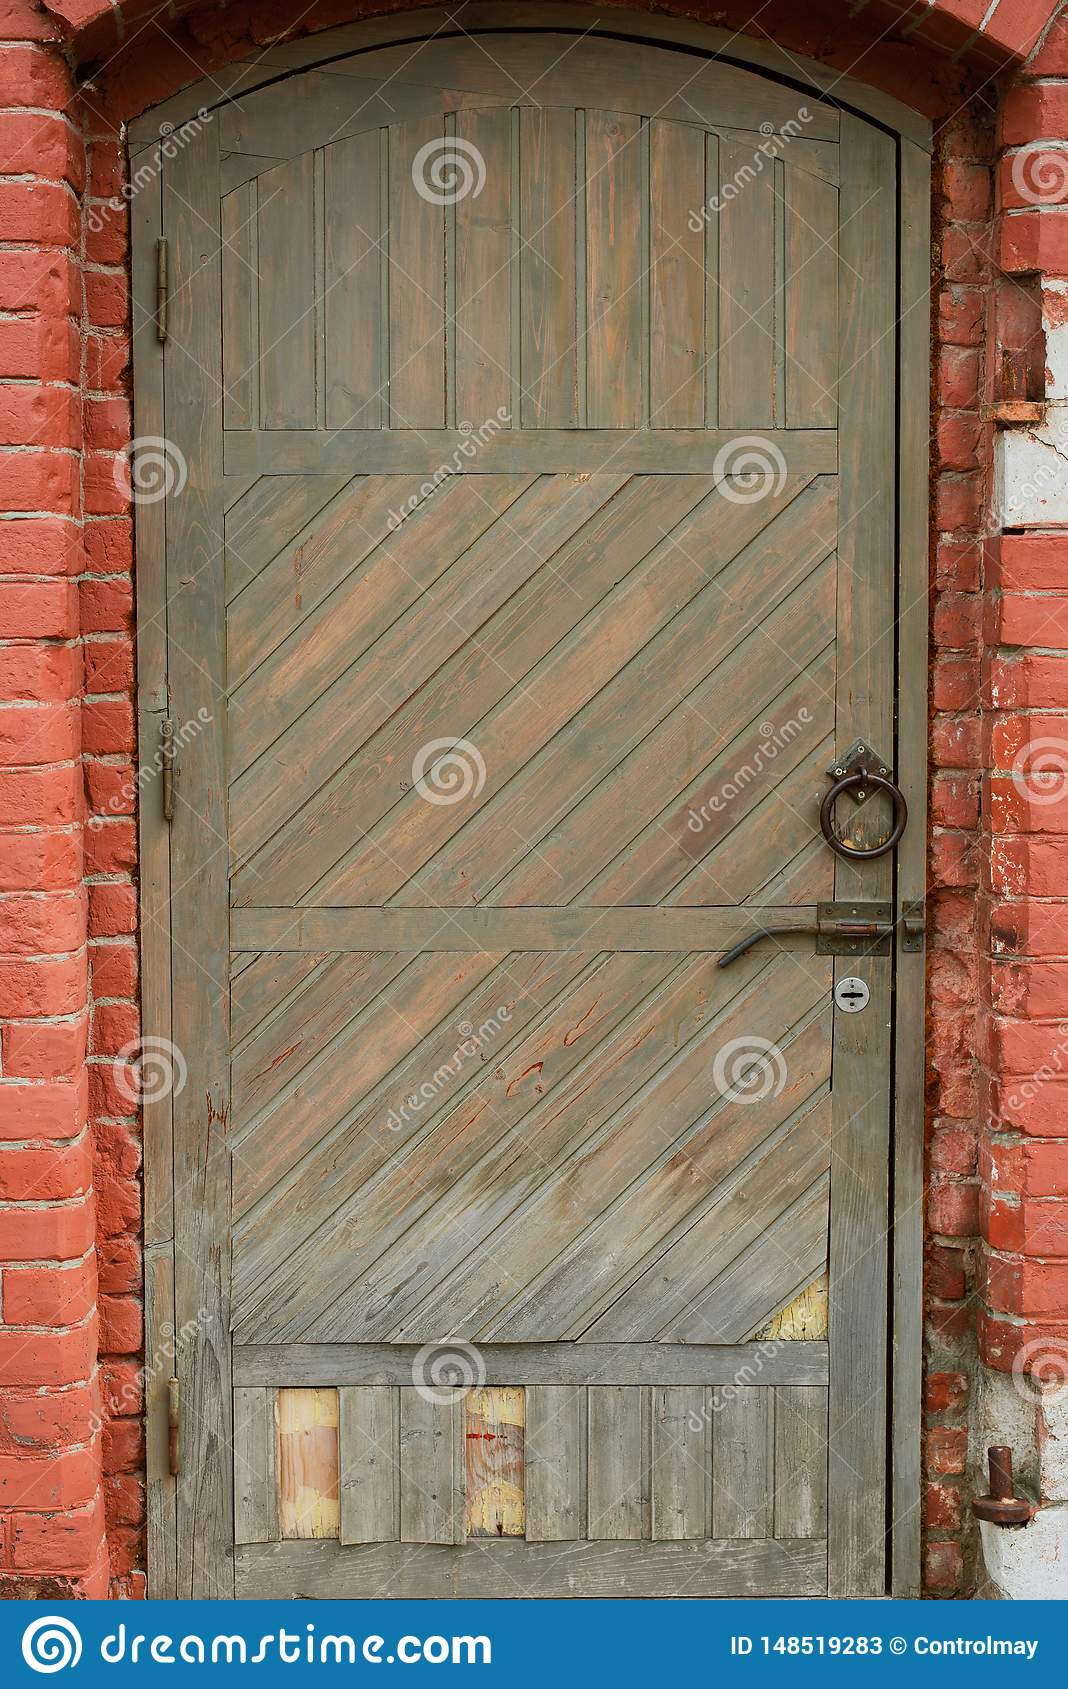 Old wooden door with a lantern above it